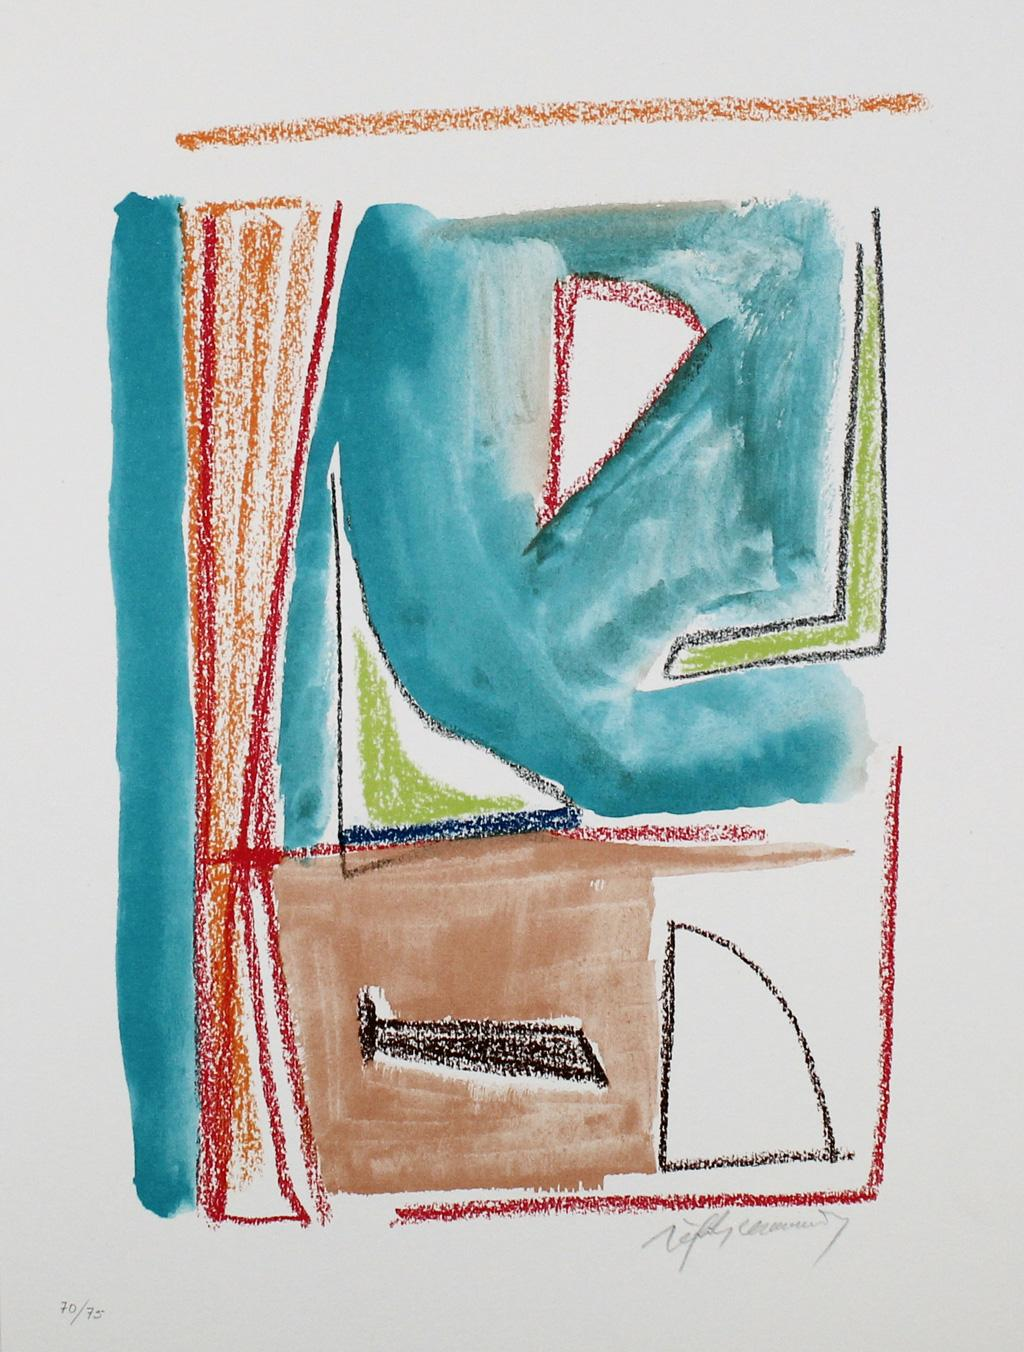 ALBERT RÀFOLS-CASAMADA: Estructures 2 - Lithograph on paper, Spanish Abstraction